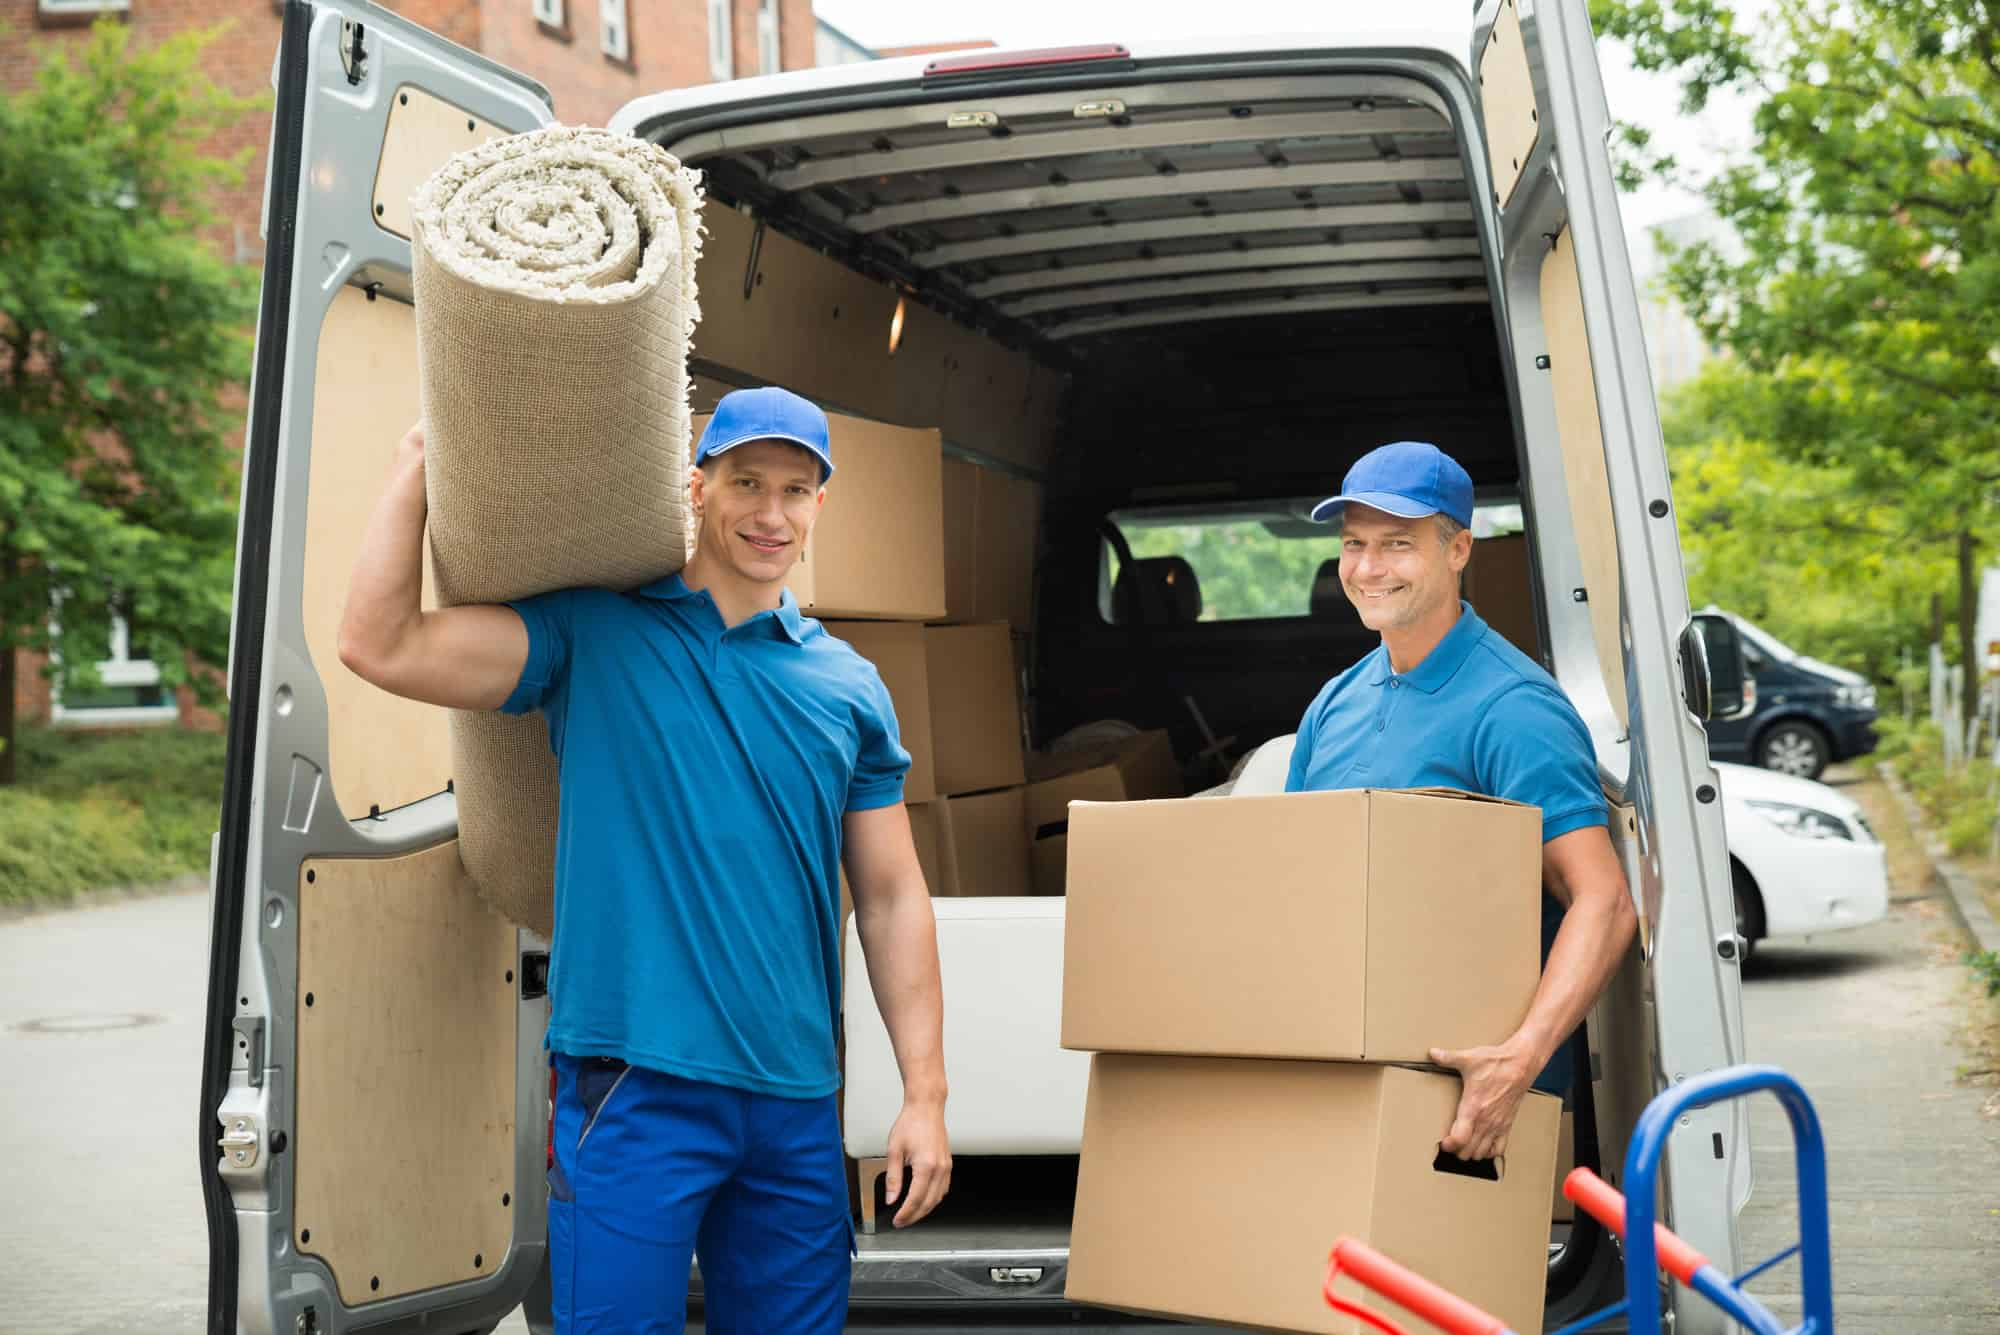 Durham moving company and movers emptying truck